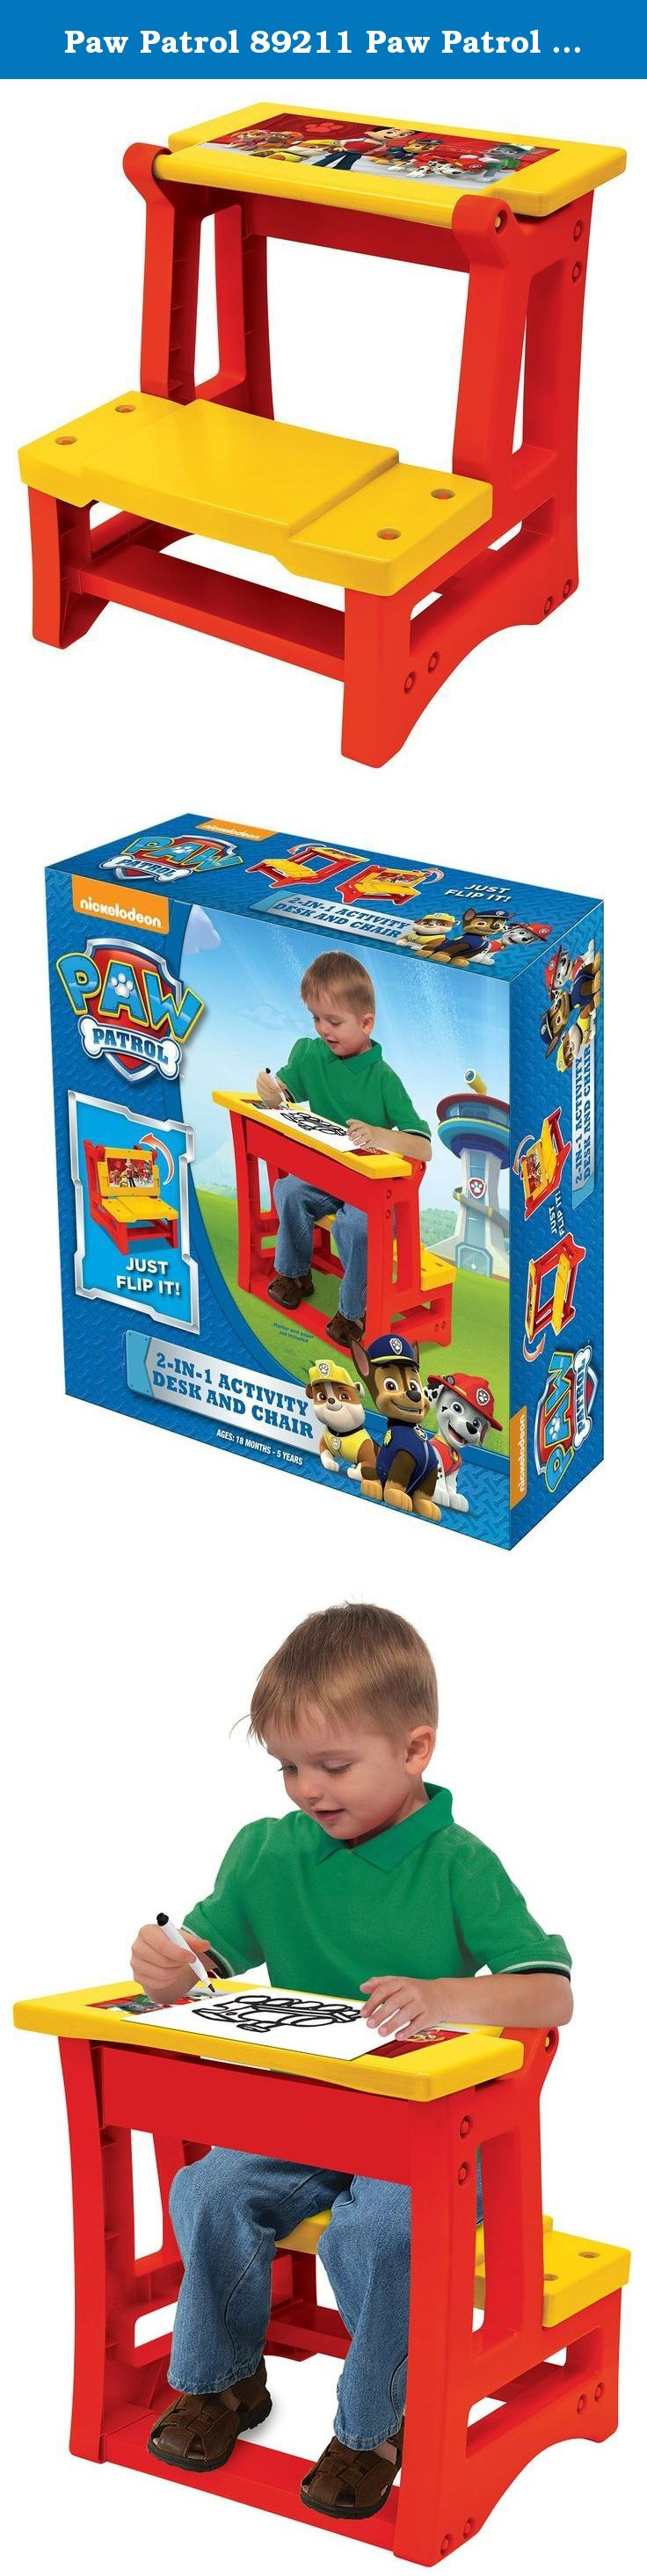 Marvelous Paw Patrol 89211 Paw Patrol 2 In 1 Activity Desk And Chair Creativecarmelina Interior Chair Design Creativecarmelinacom